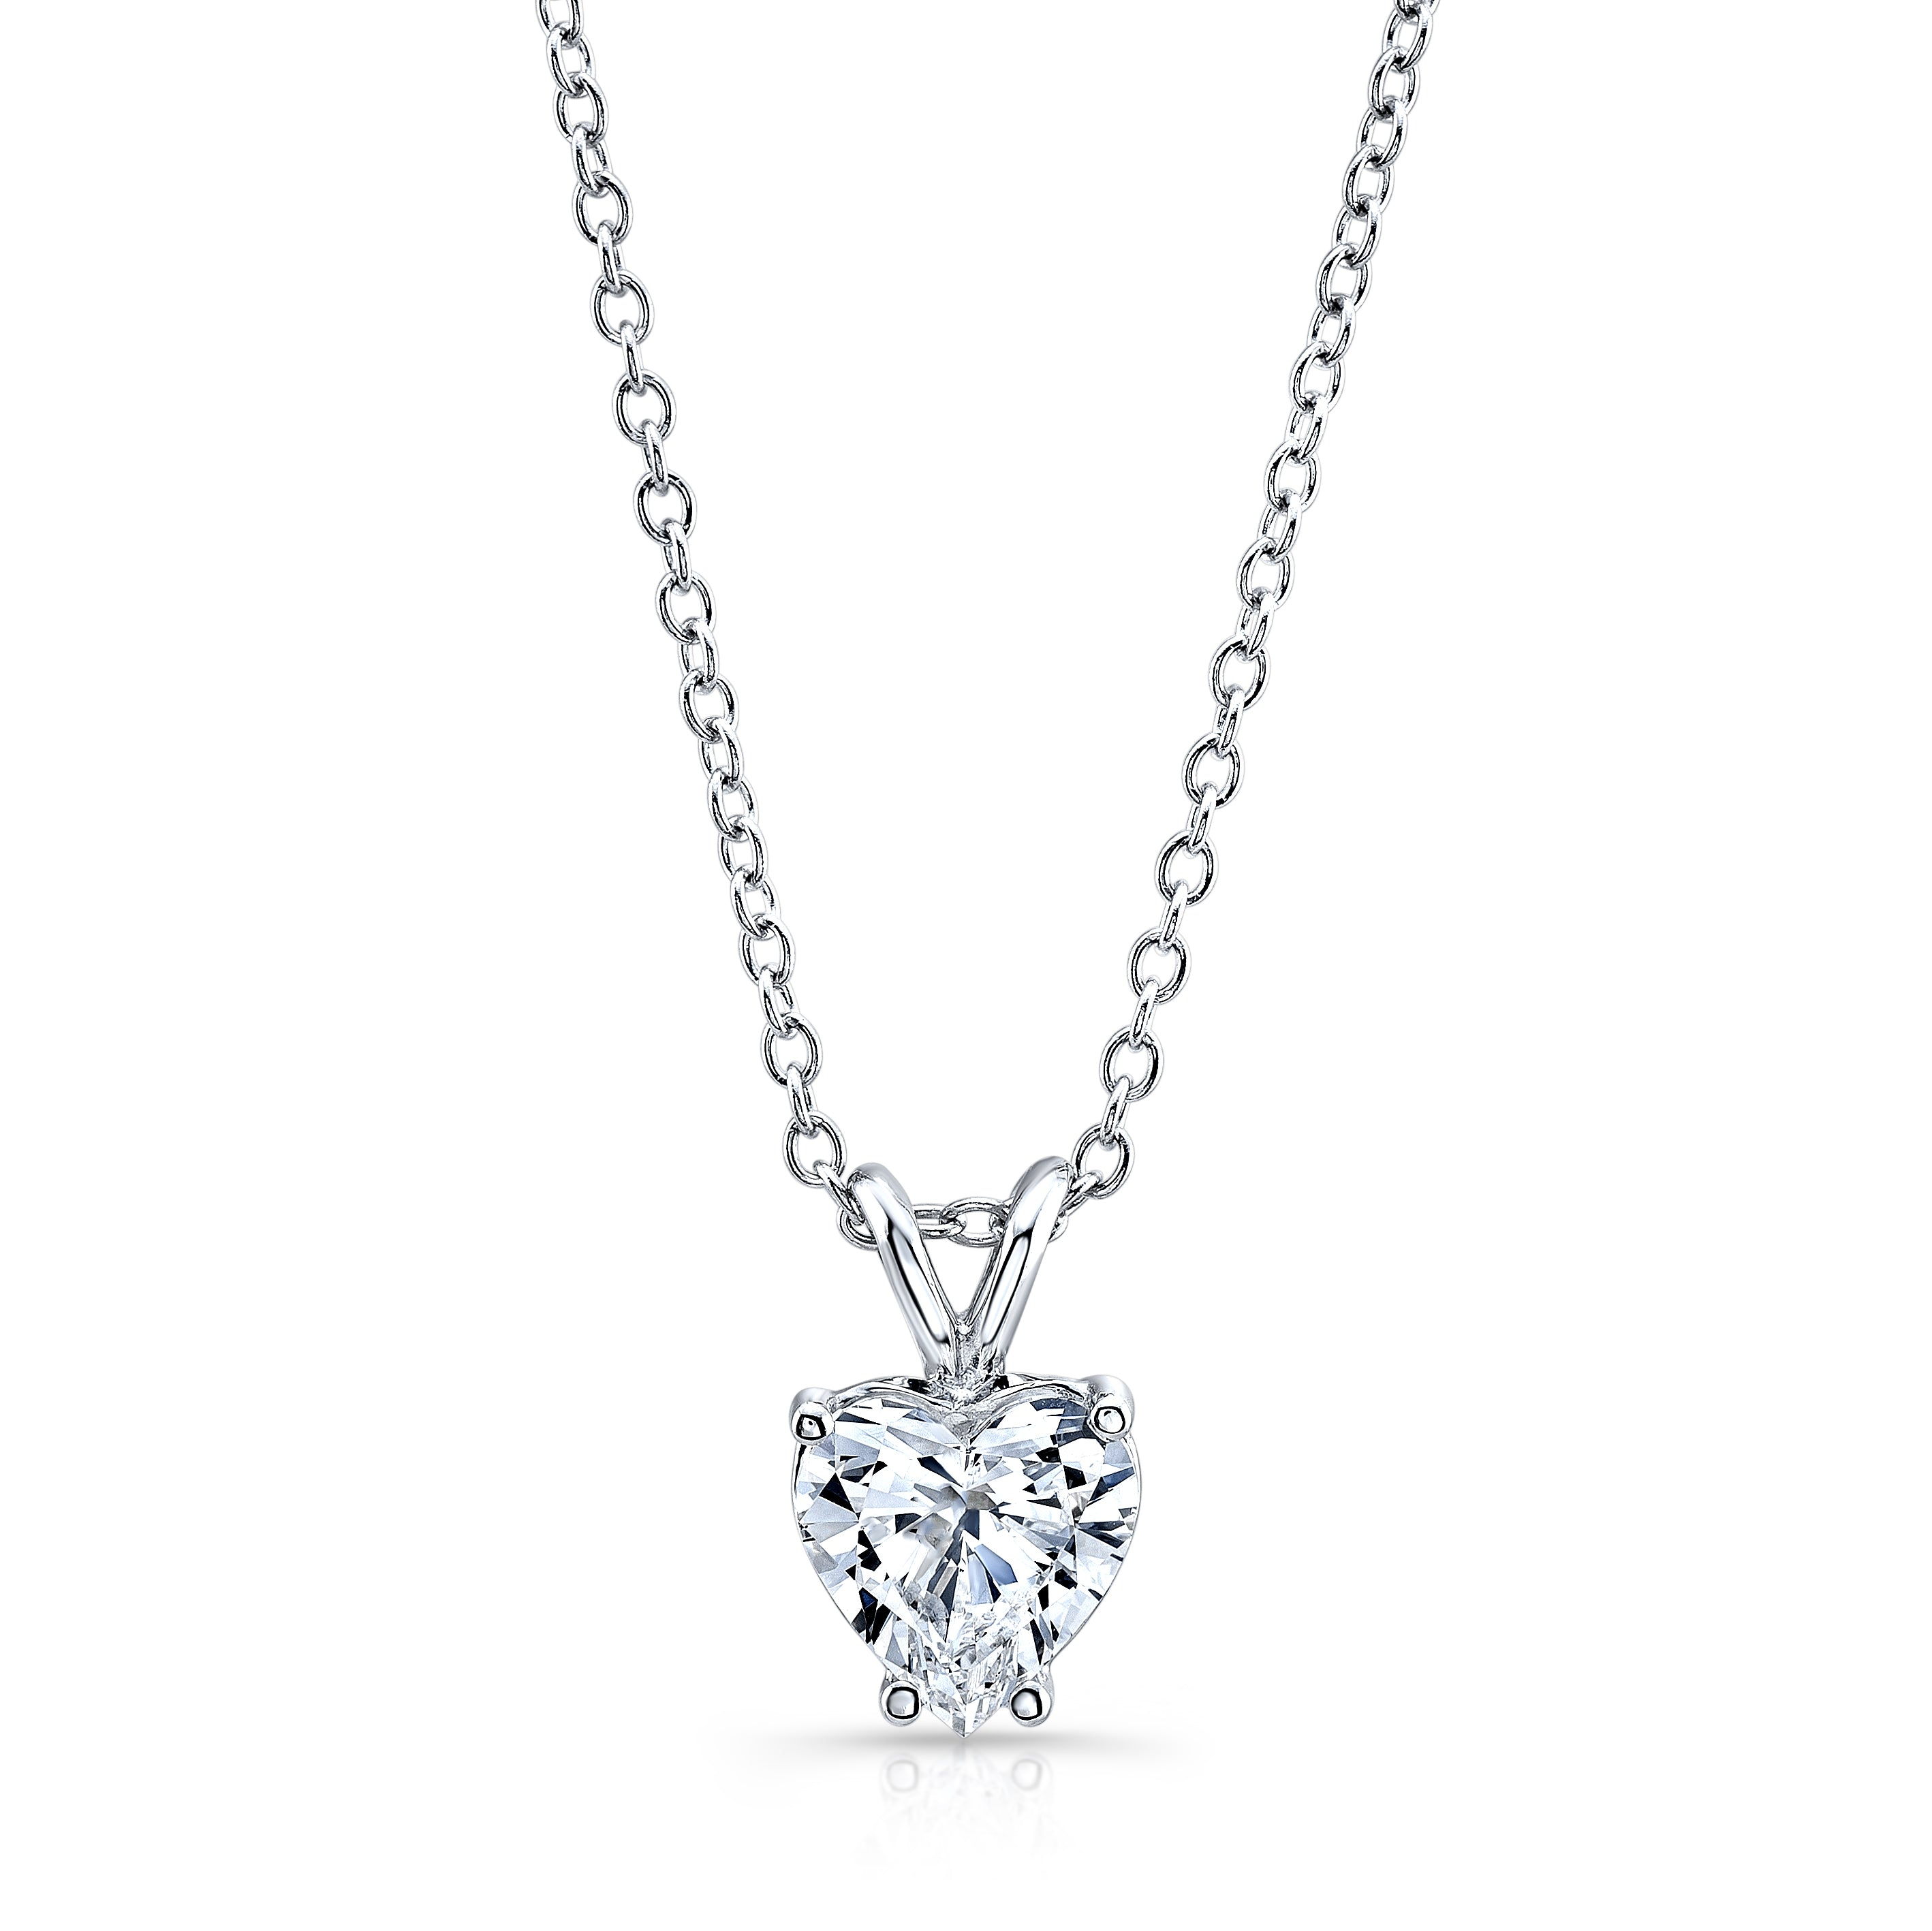 necklace pendant jewelry diamond enlarged products necklaces the platinum